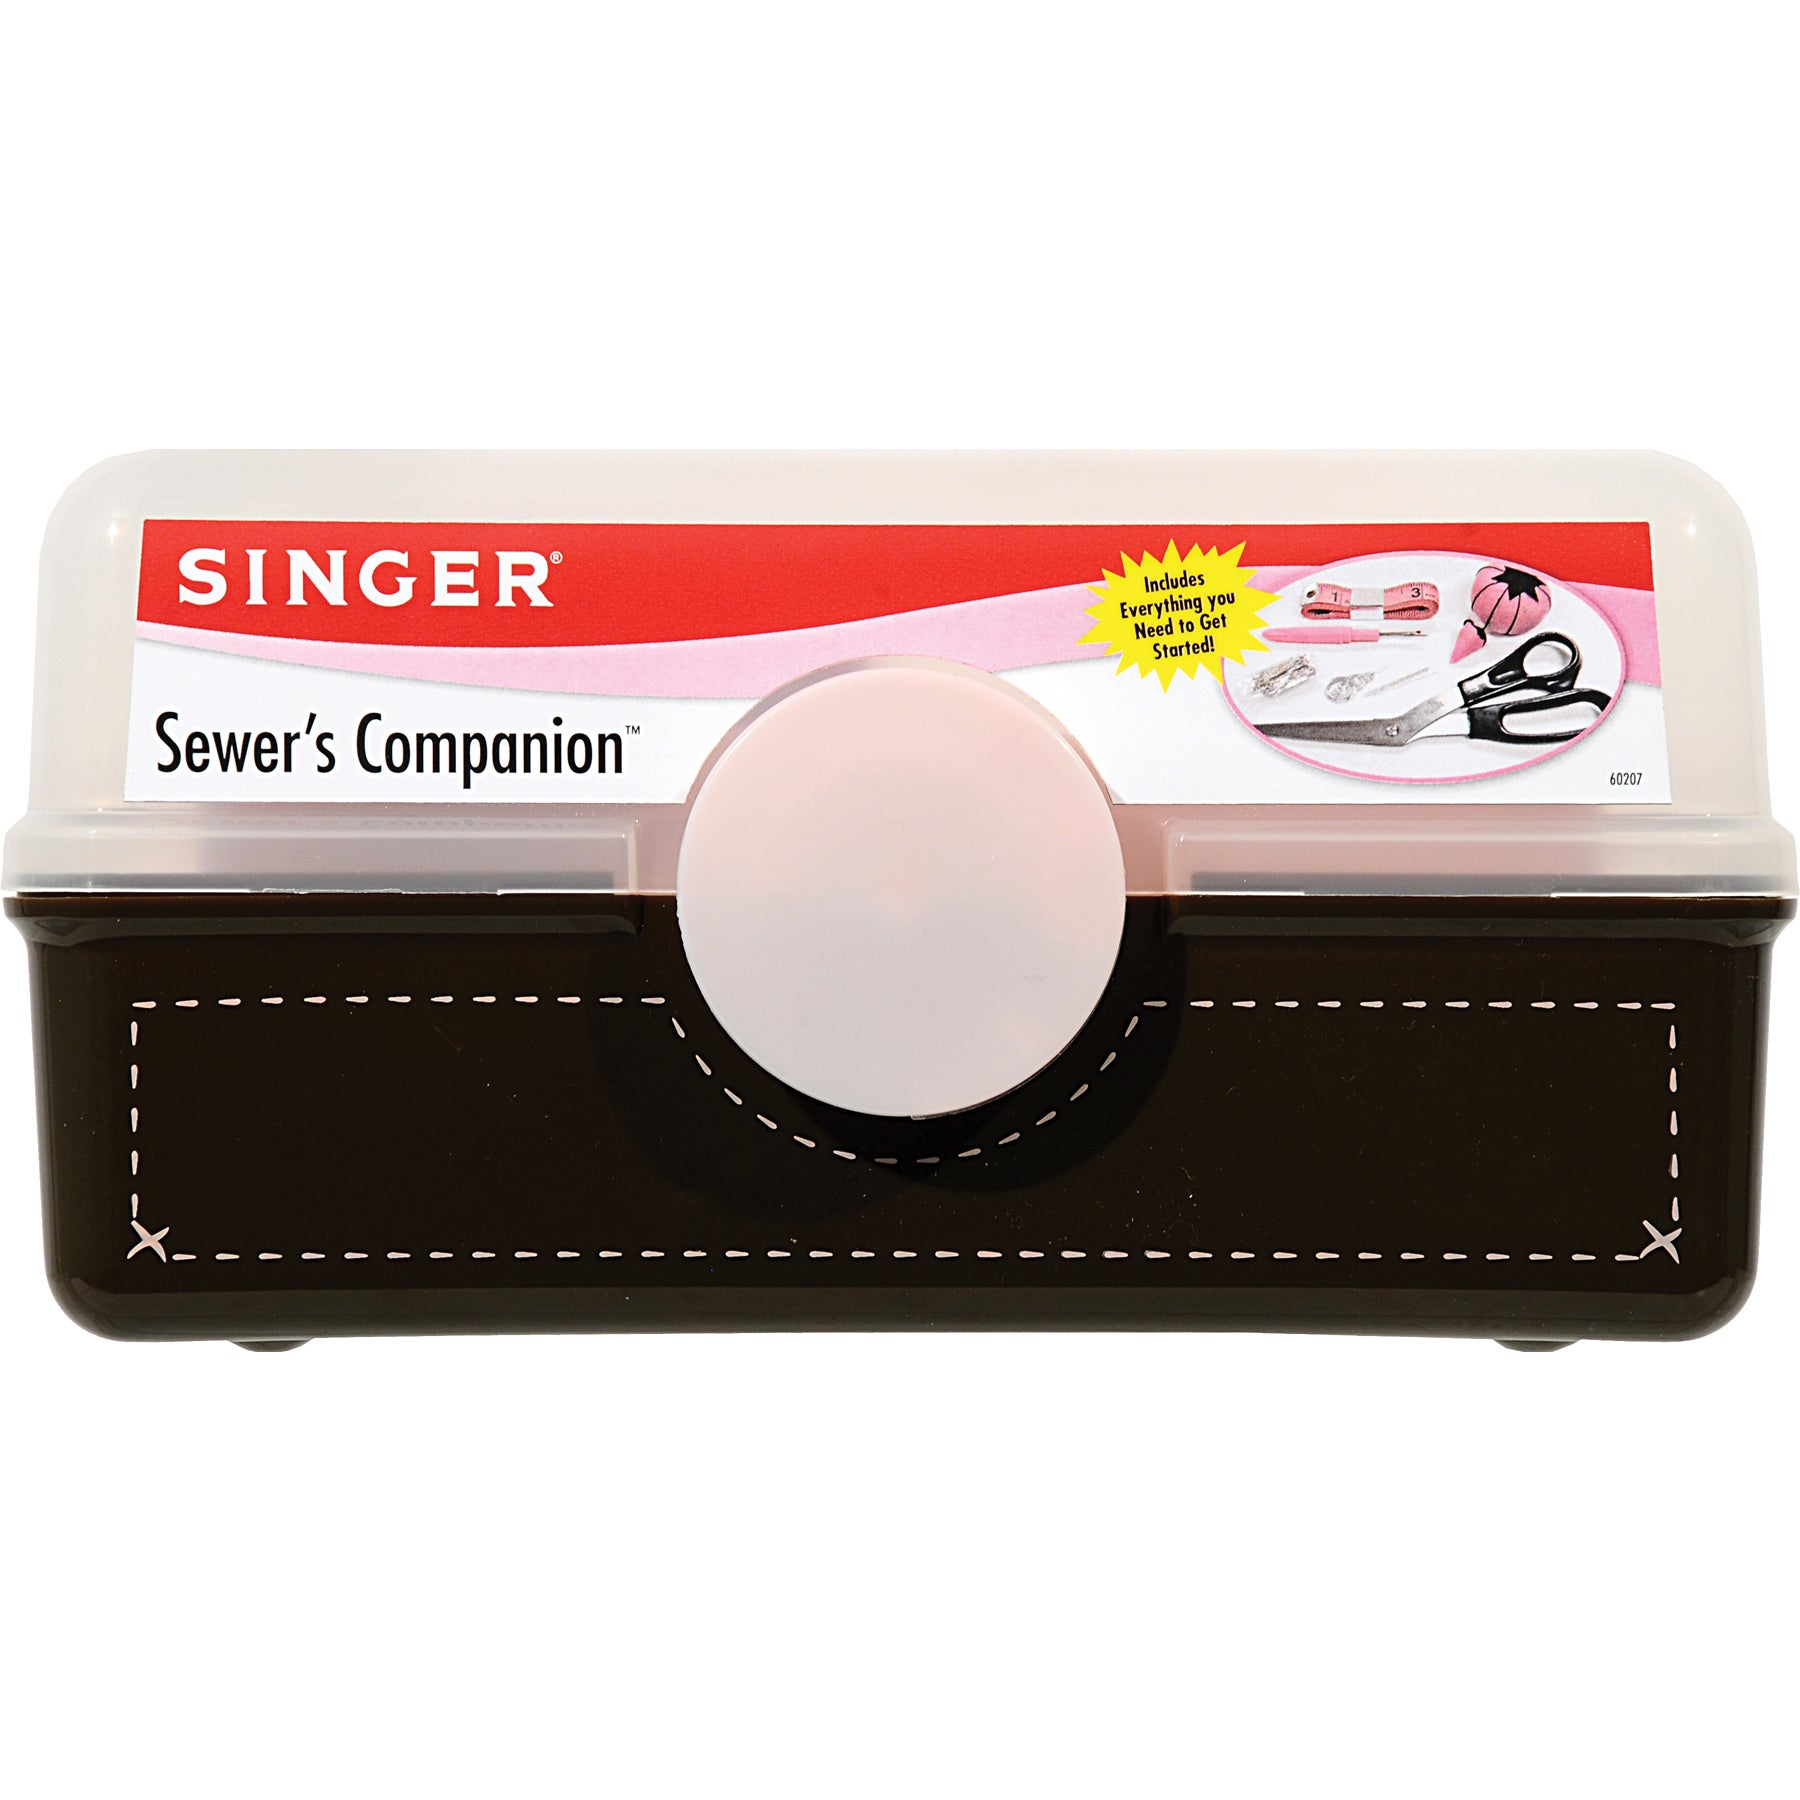 SINGER SEWING CO. 60207 Sewer's Companion Sewing Kit (Kit)